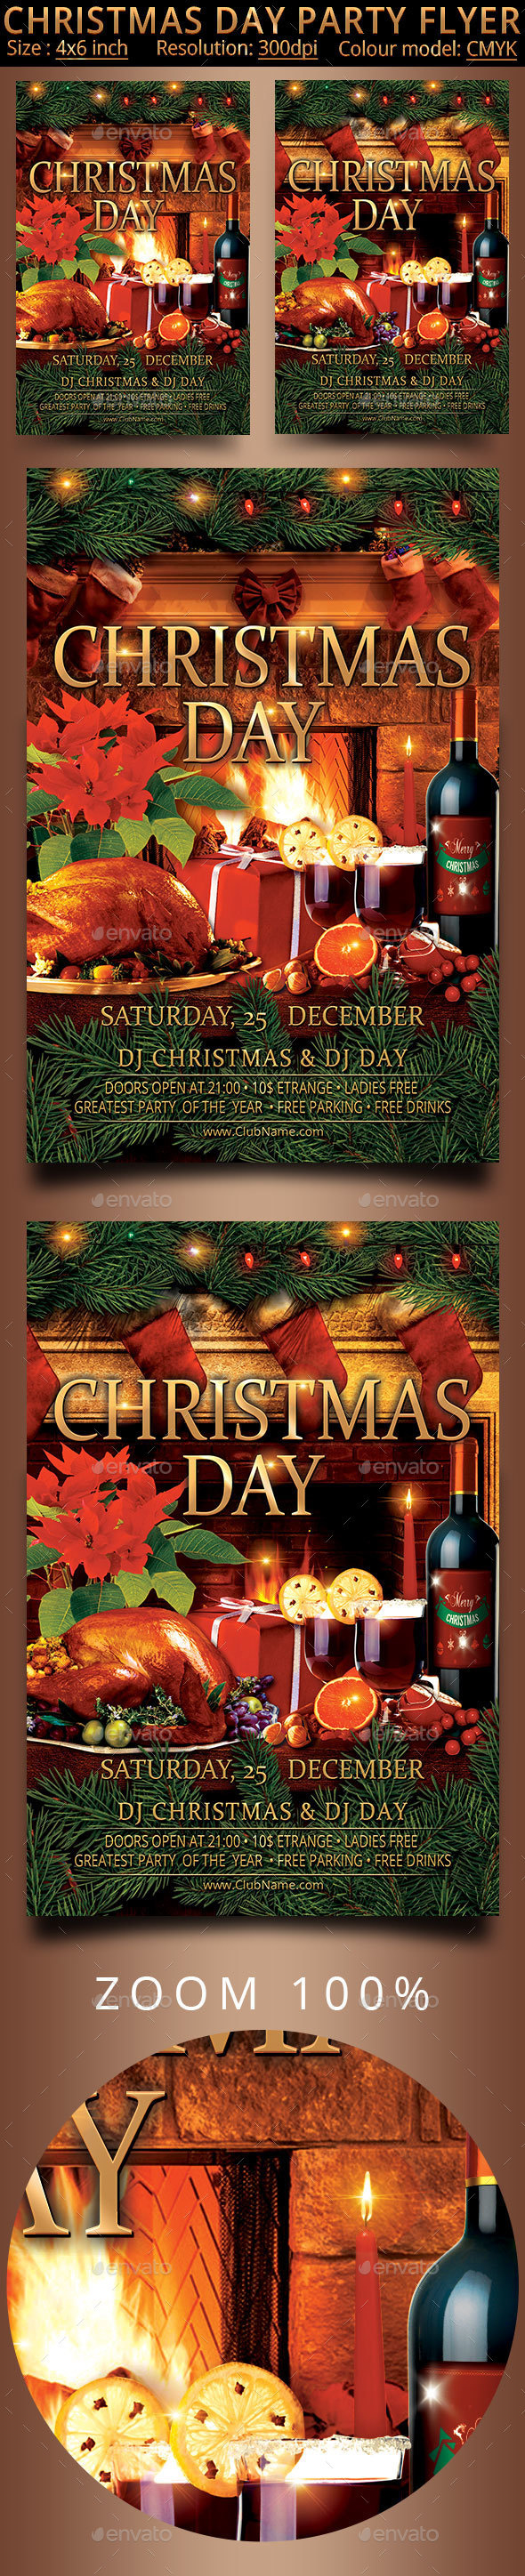 Christmas Day Party Flyer